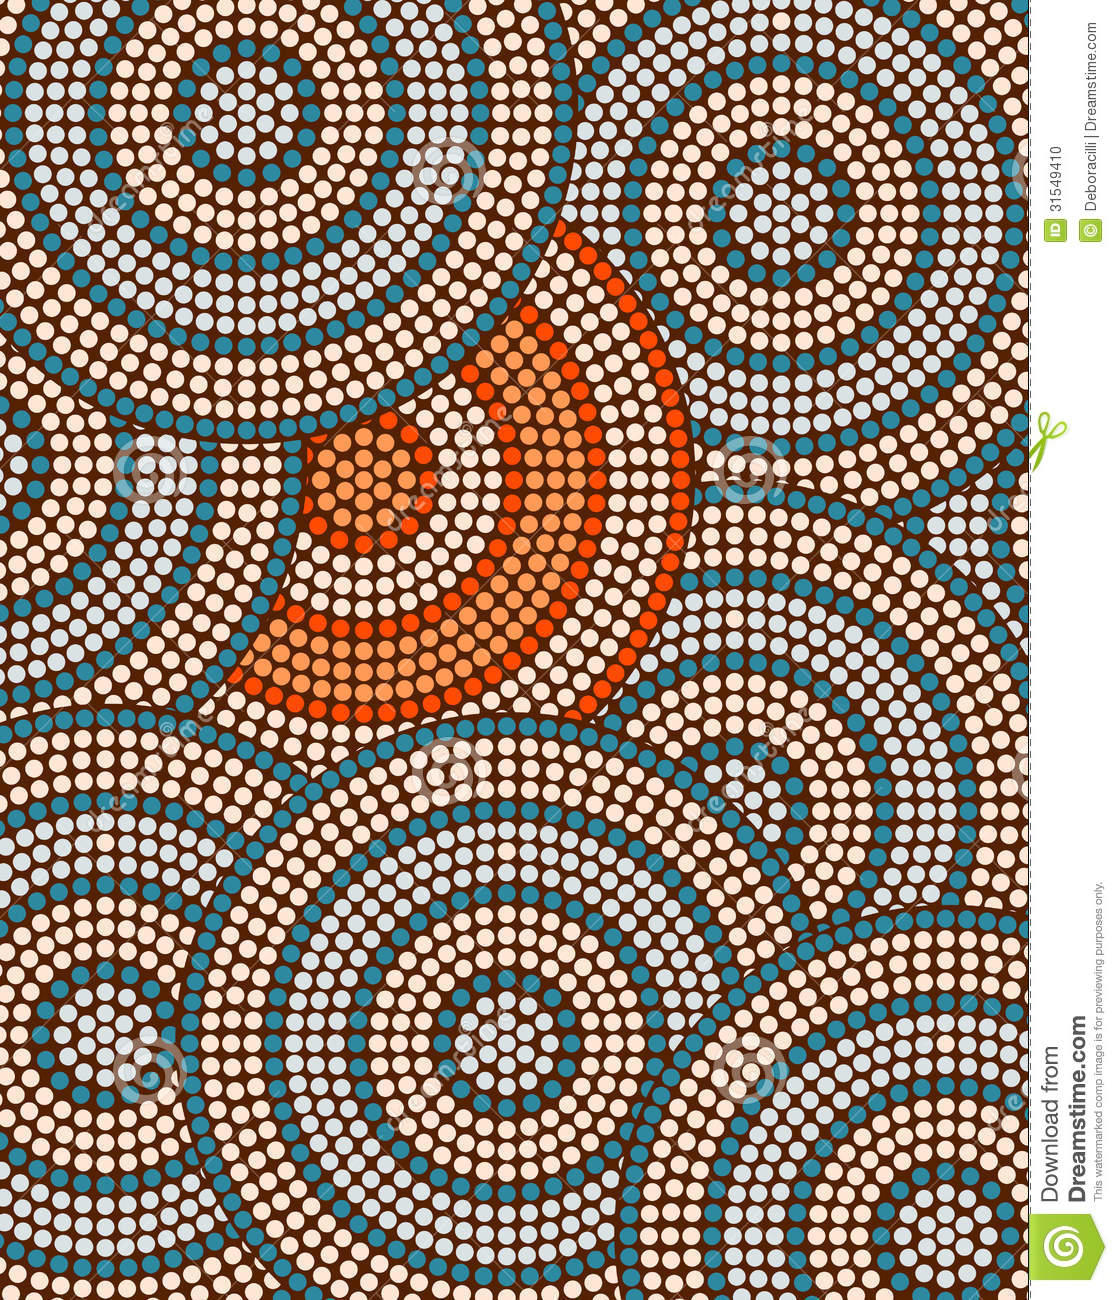 Aboriginal Design Wallpaper : A illustration based on aboriginal style of dot painting